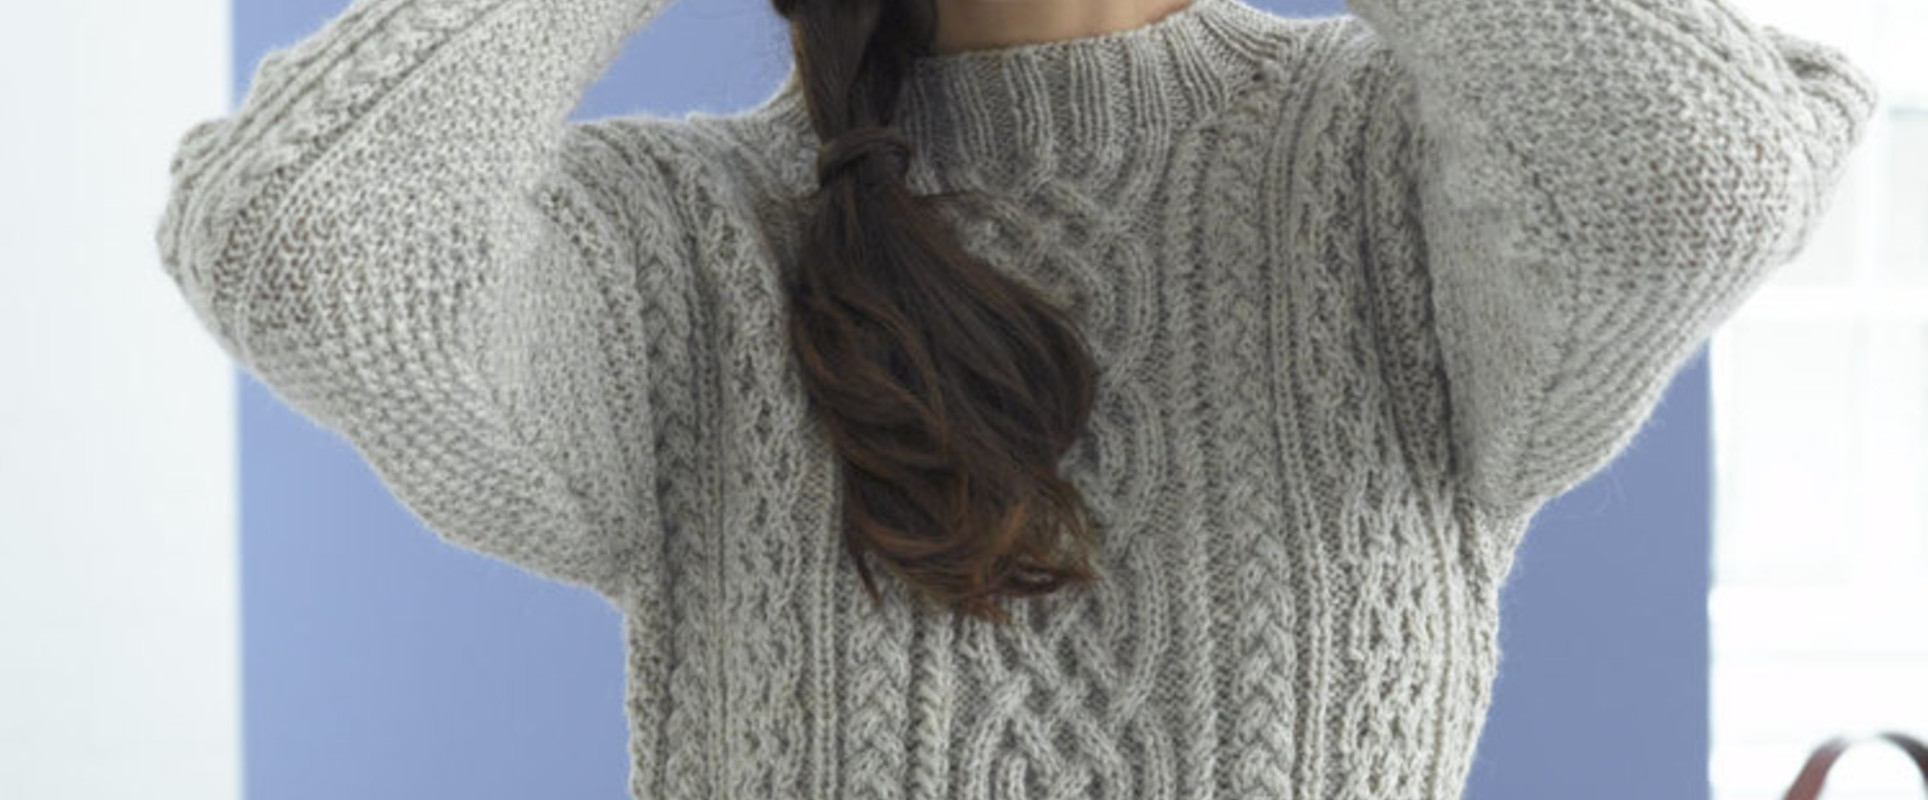 Aran Jumper Knitting Patterns Top 5 Free Aran Jumper Knitting Patterns For Women Lovecrafts